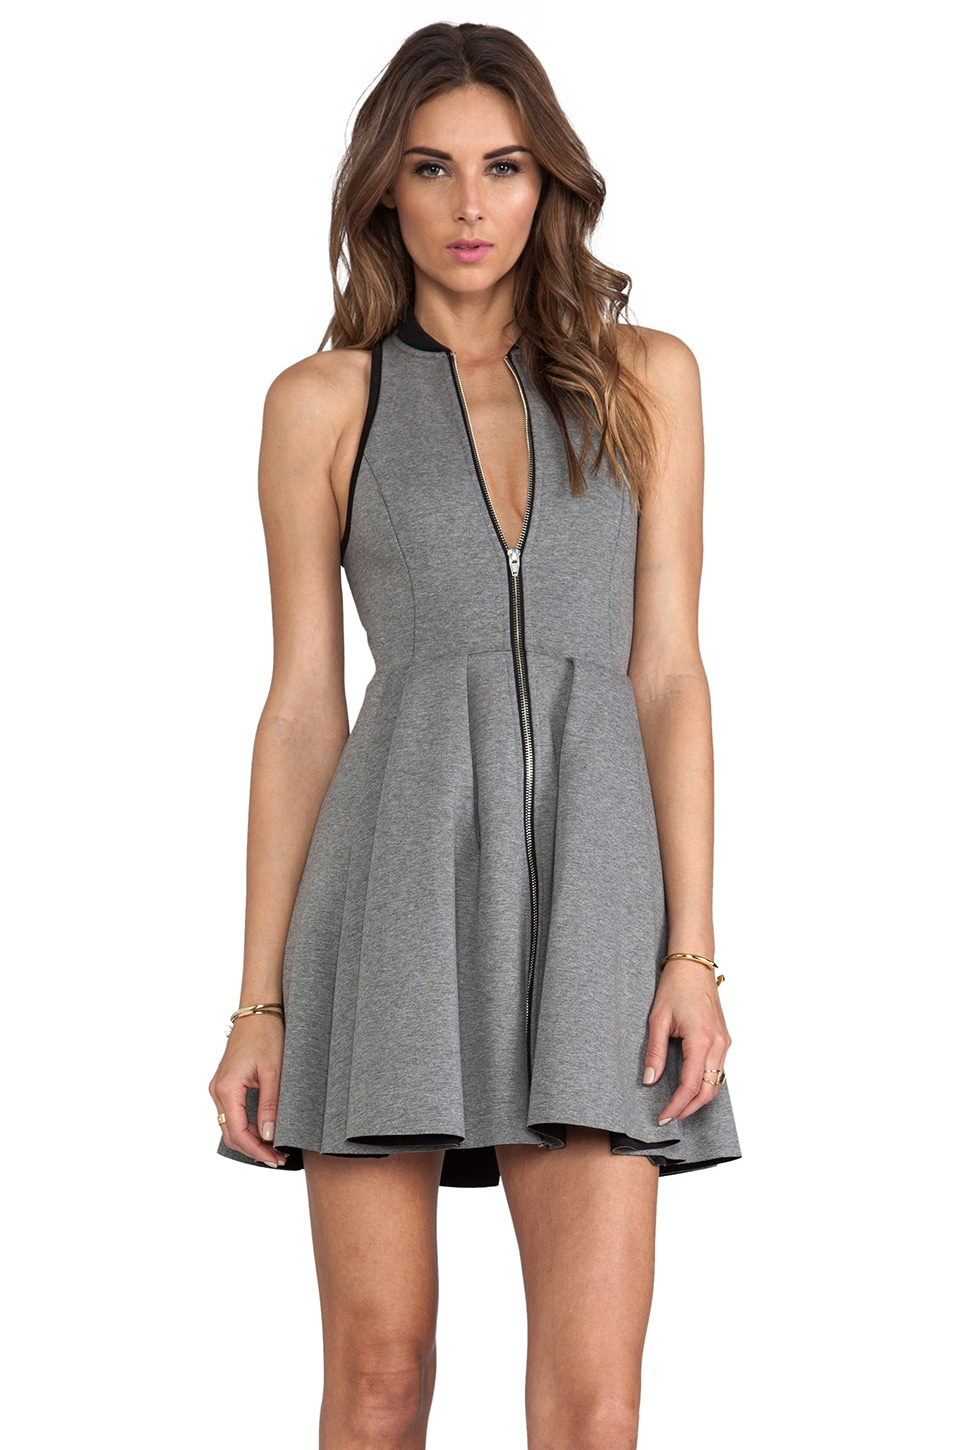 T by Alexander Wang Jersey Bonded Neoprene Rib Collar Dress in Heather Grey